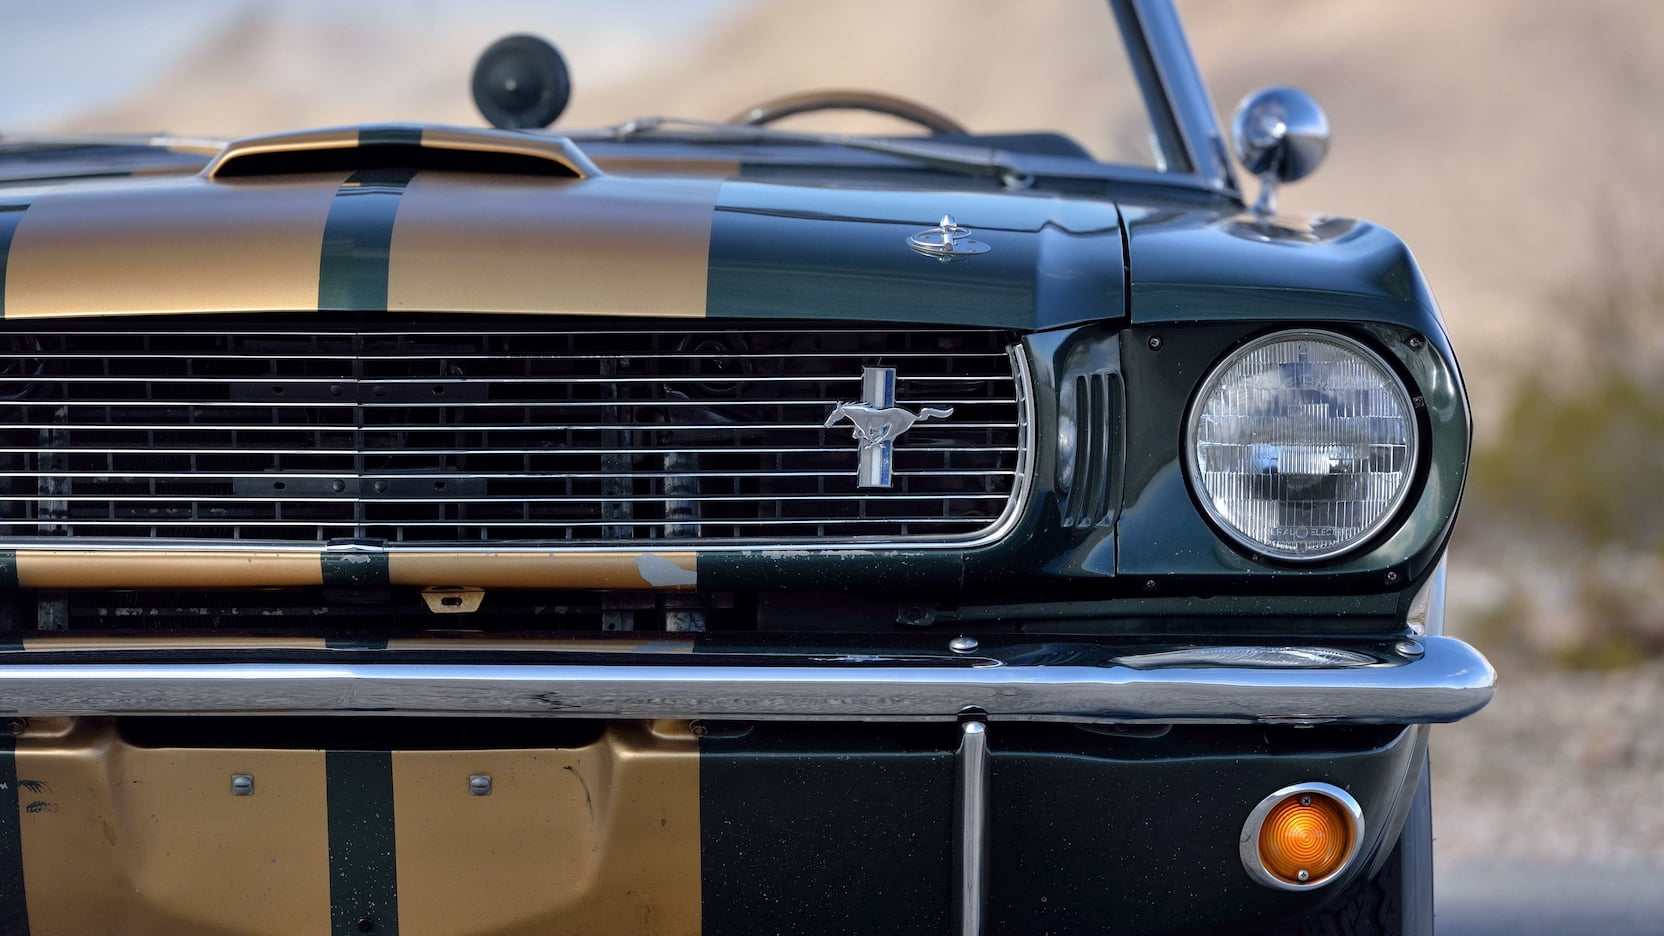 1966 Shelby GT350 Convertible Headlight And Grille